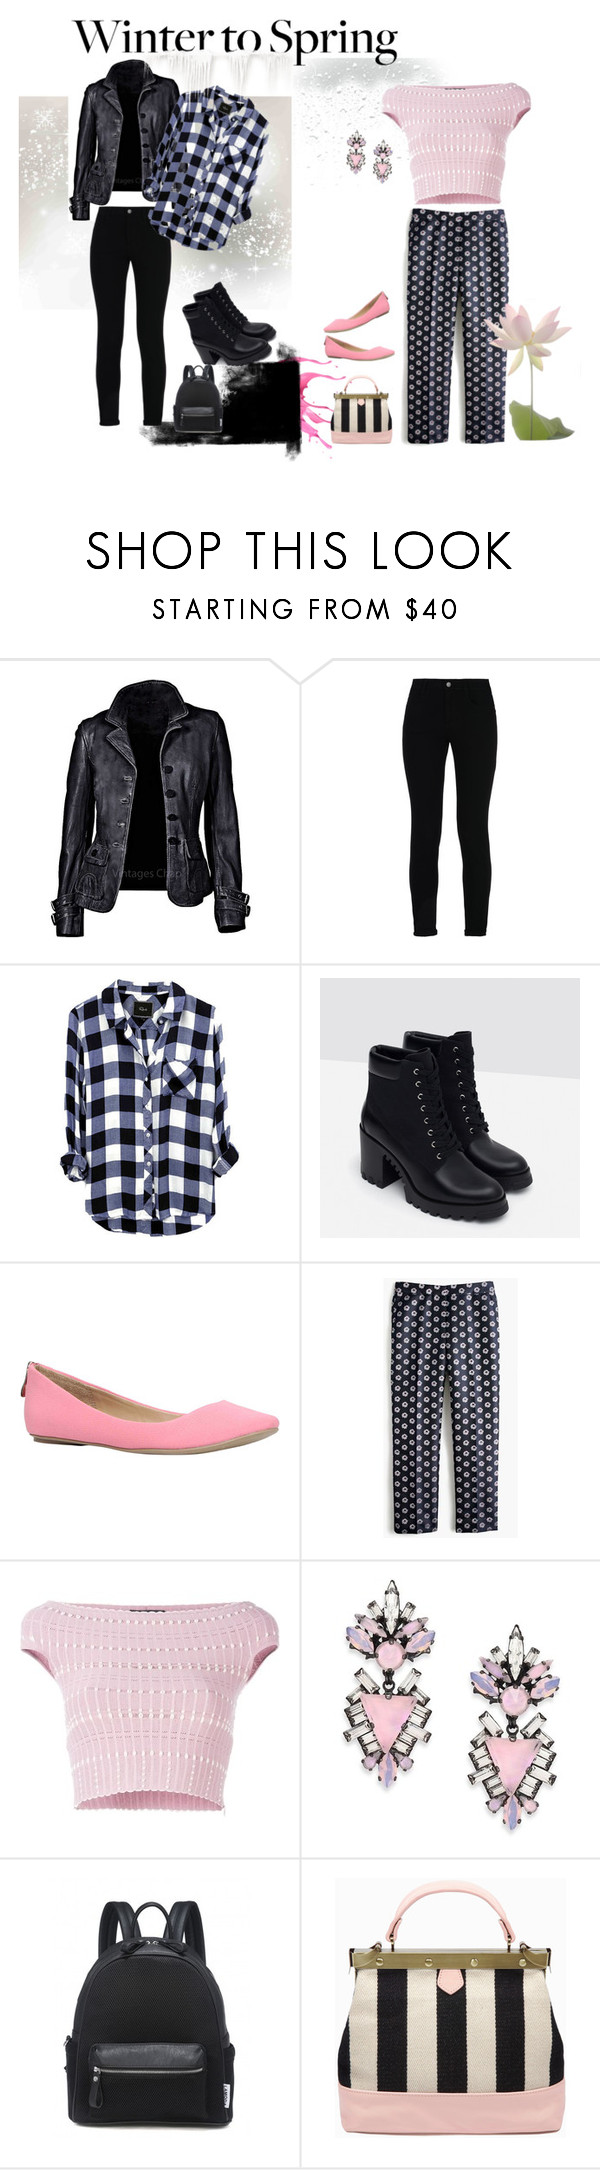 """""""#wintertospring"""" by mimiodell ❤ liked on Polyvore featuring STELLA McCARTNEY, Zara, Call it SPRING, J.Crew, Alexander McQueen and Erickson Beamon"""